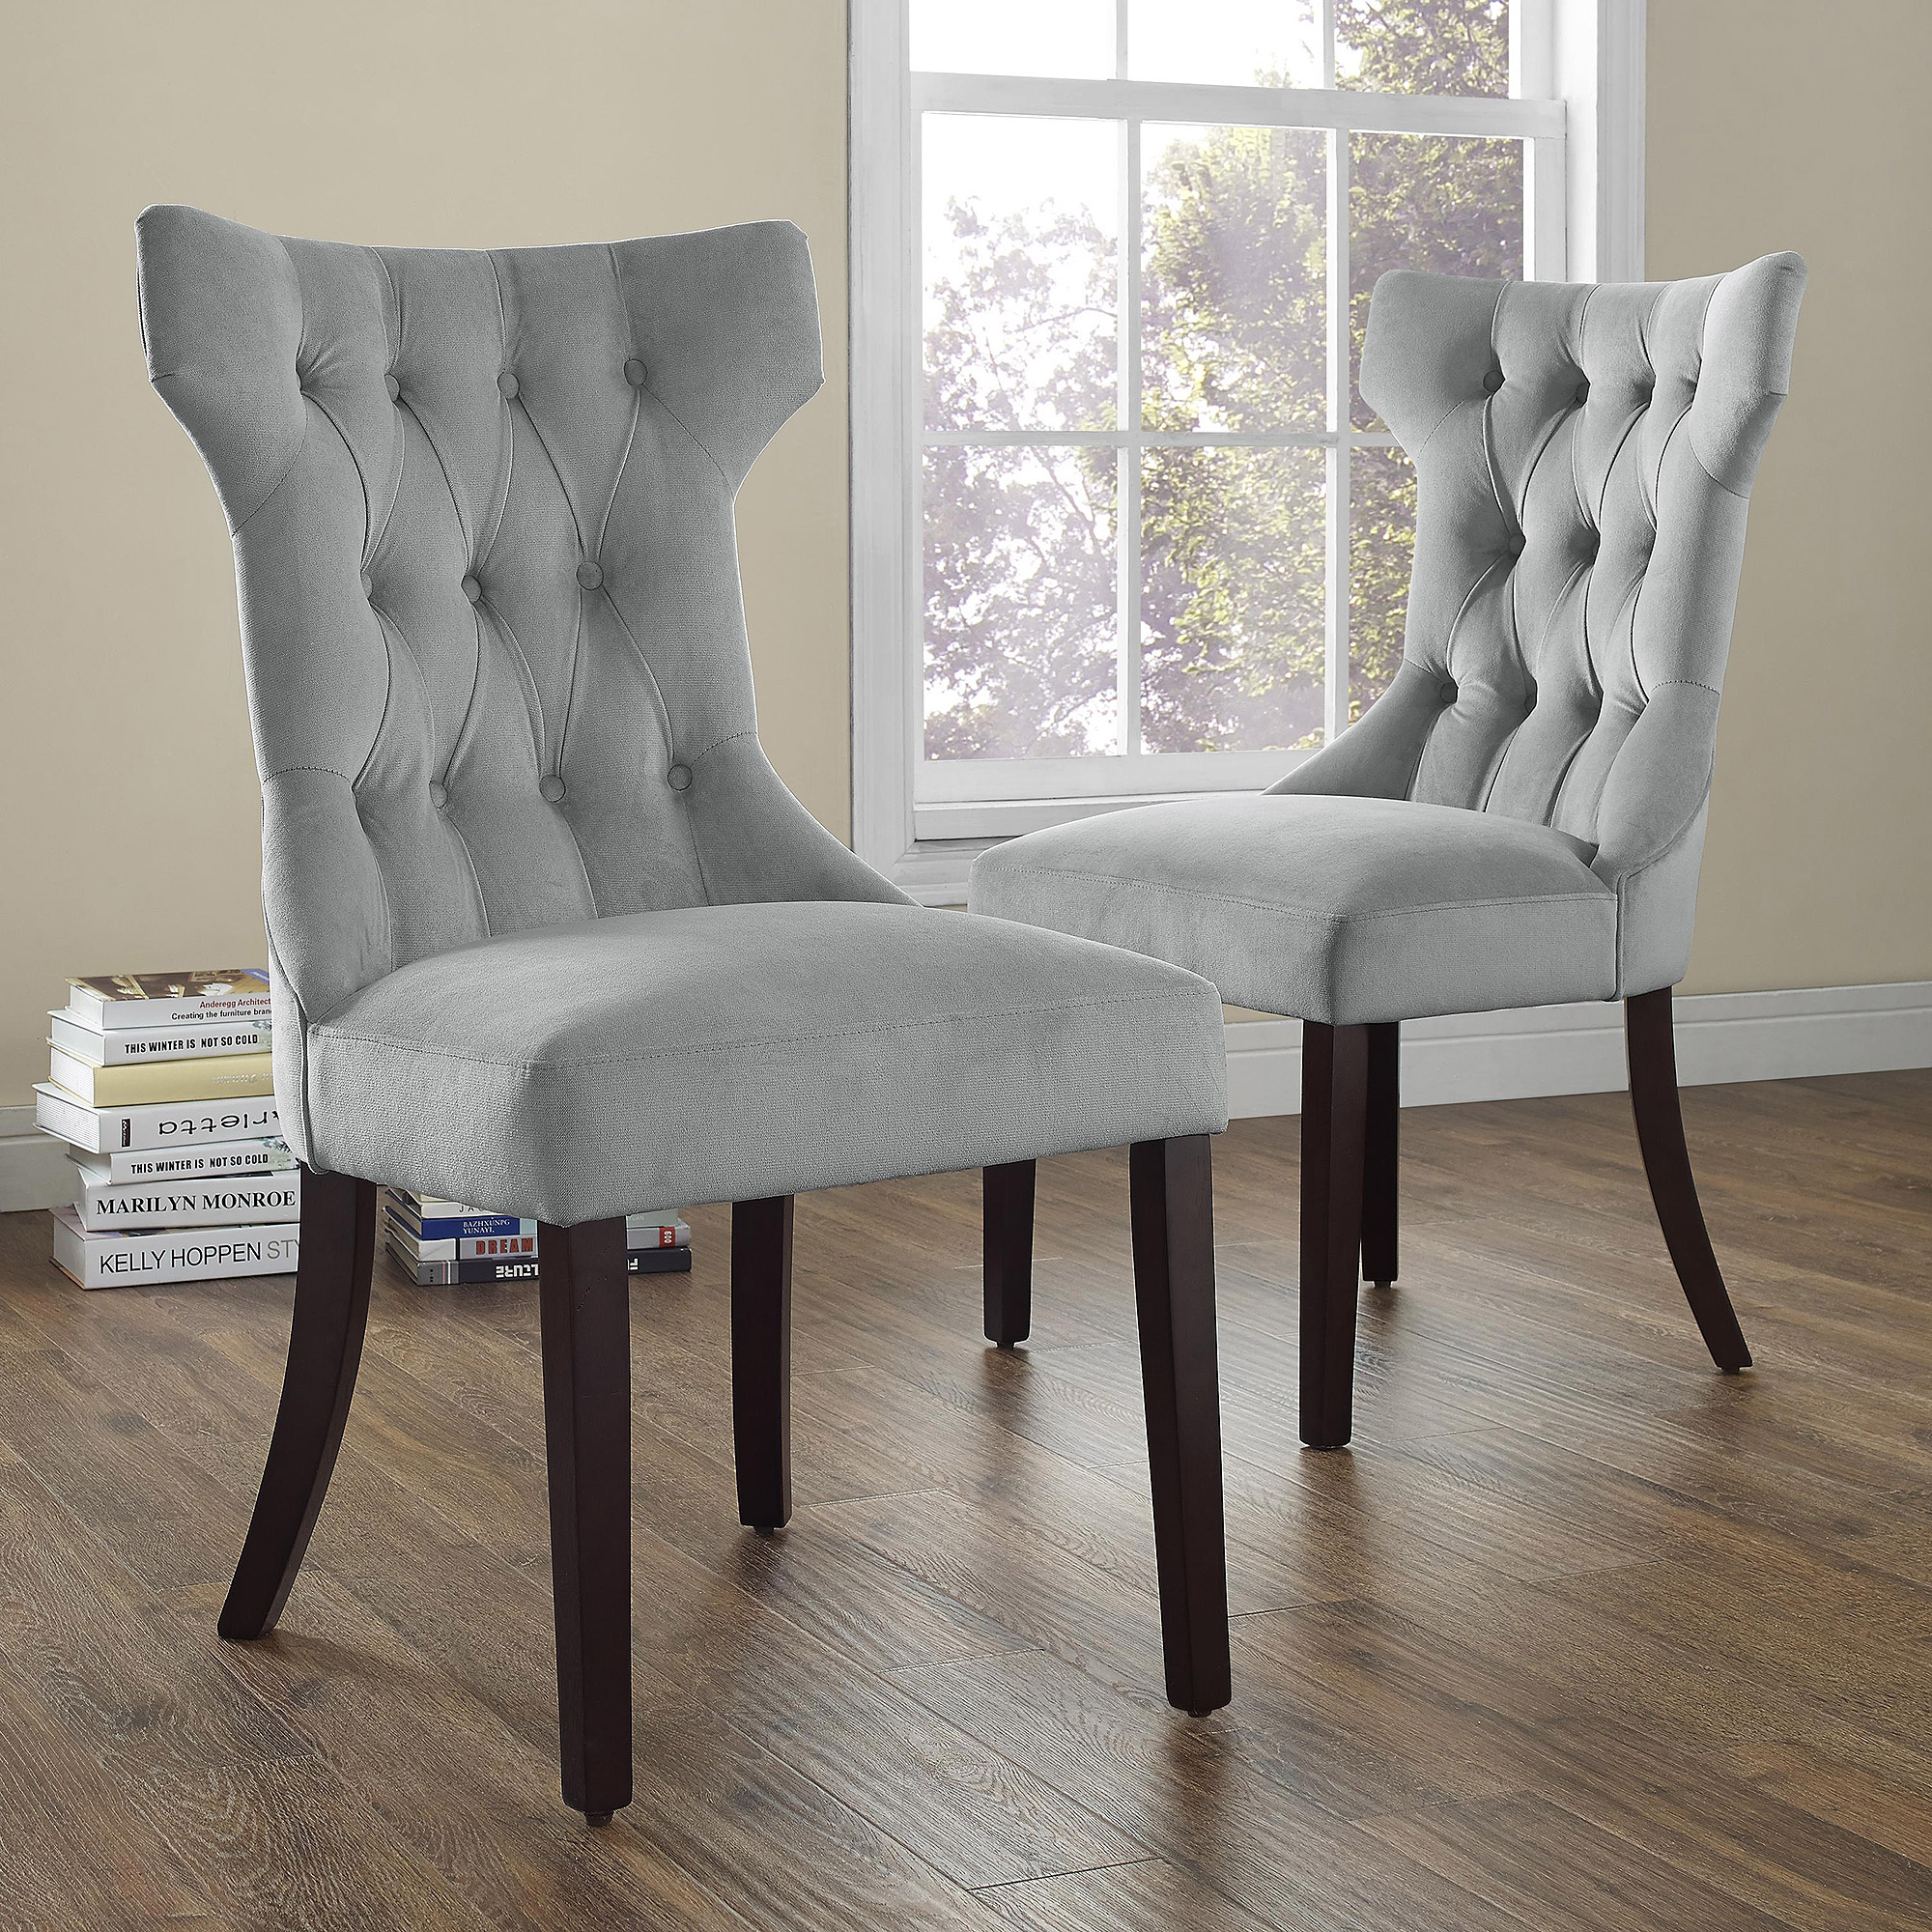 Upholstered Living Room Chairs Dorel Living Clairborne Tufted Upholestered Dining Chair Set Of 2